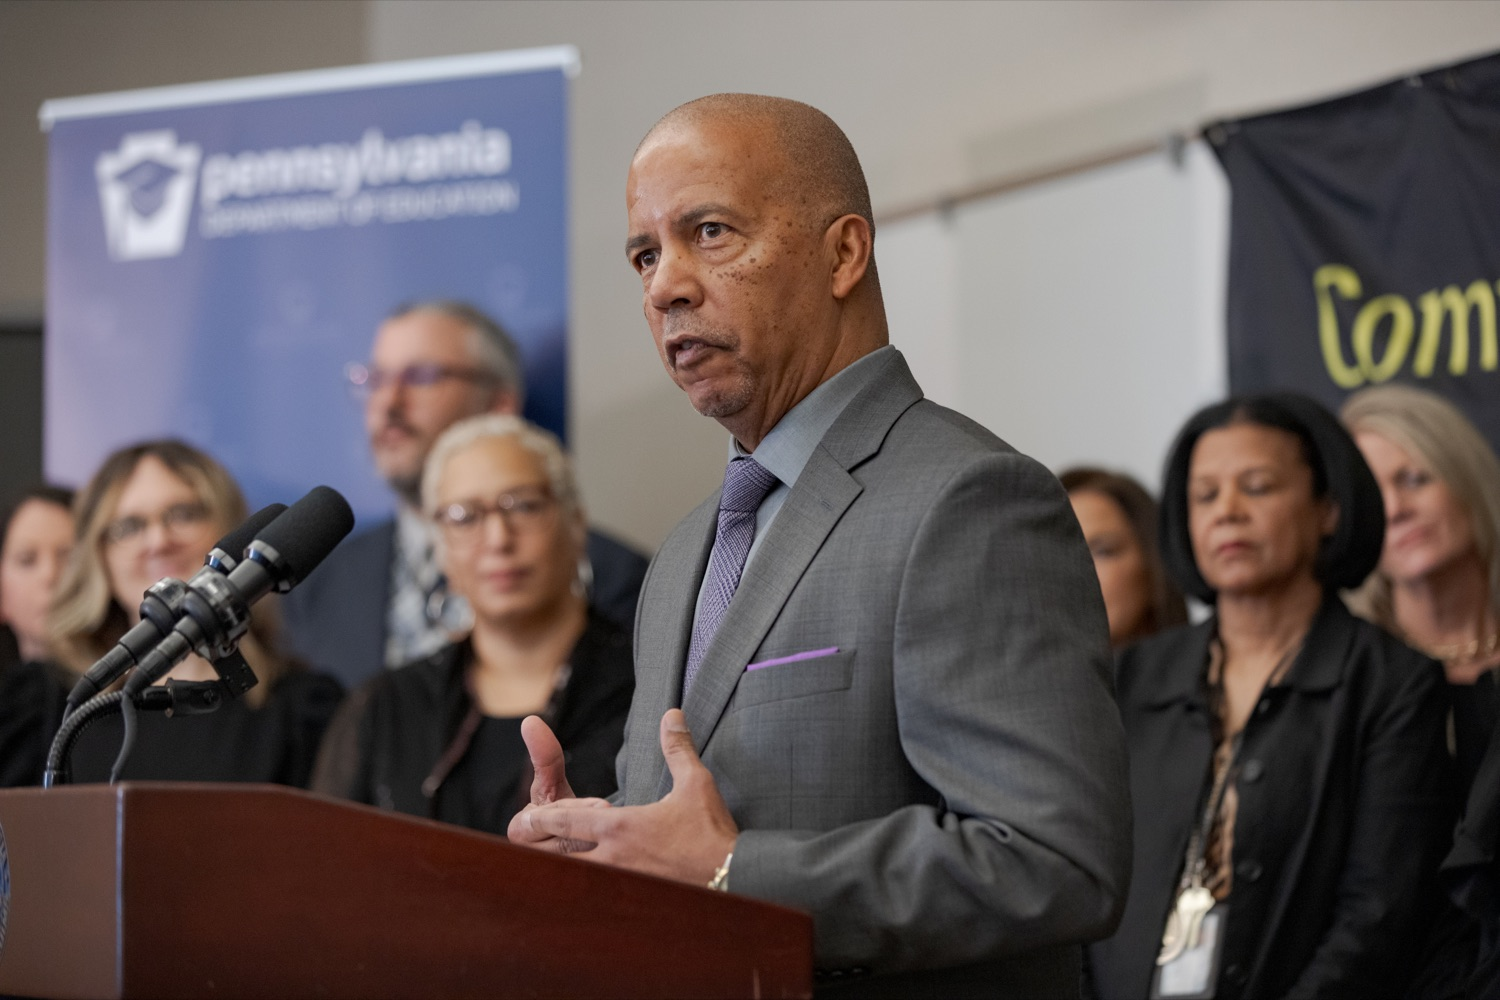 "<a href=""https://filesource.wostreaming.net/commonwealthofpa/photo/17592_EDU_Aspiring_NK_005.JPG"" target=""_blank"">⇣ Download Photo<br></a>Dr. Donald Guy Generals, president of the Community College of Philadelphia, speaks during a press conference, announcing the School District of Philadelphia's new pilot program, Aspiring to Educate, that aims to cultivate and diversify the citys educator pool, inside Community College of Philadelphia's Center for Business and Industry on Wednesday, November 20, 2019."